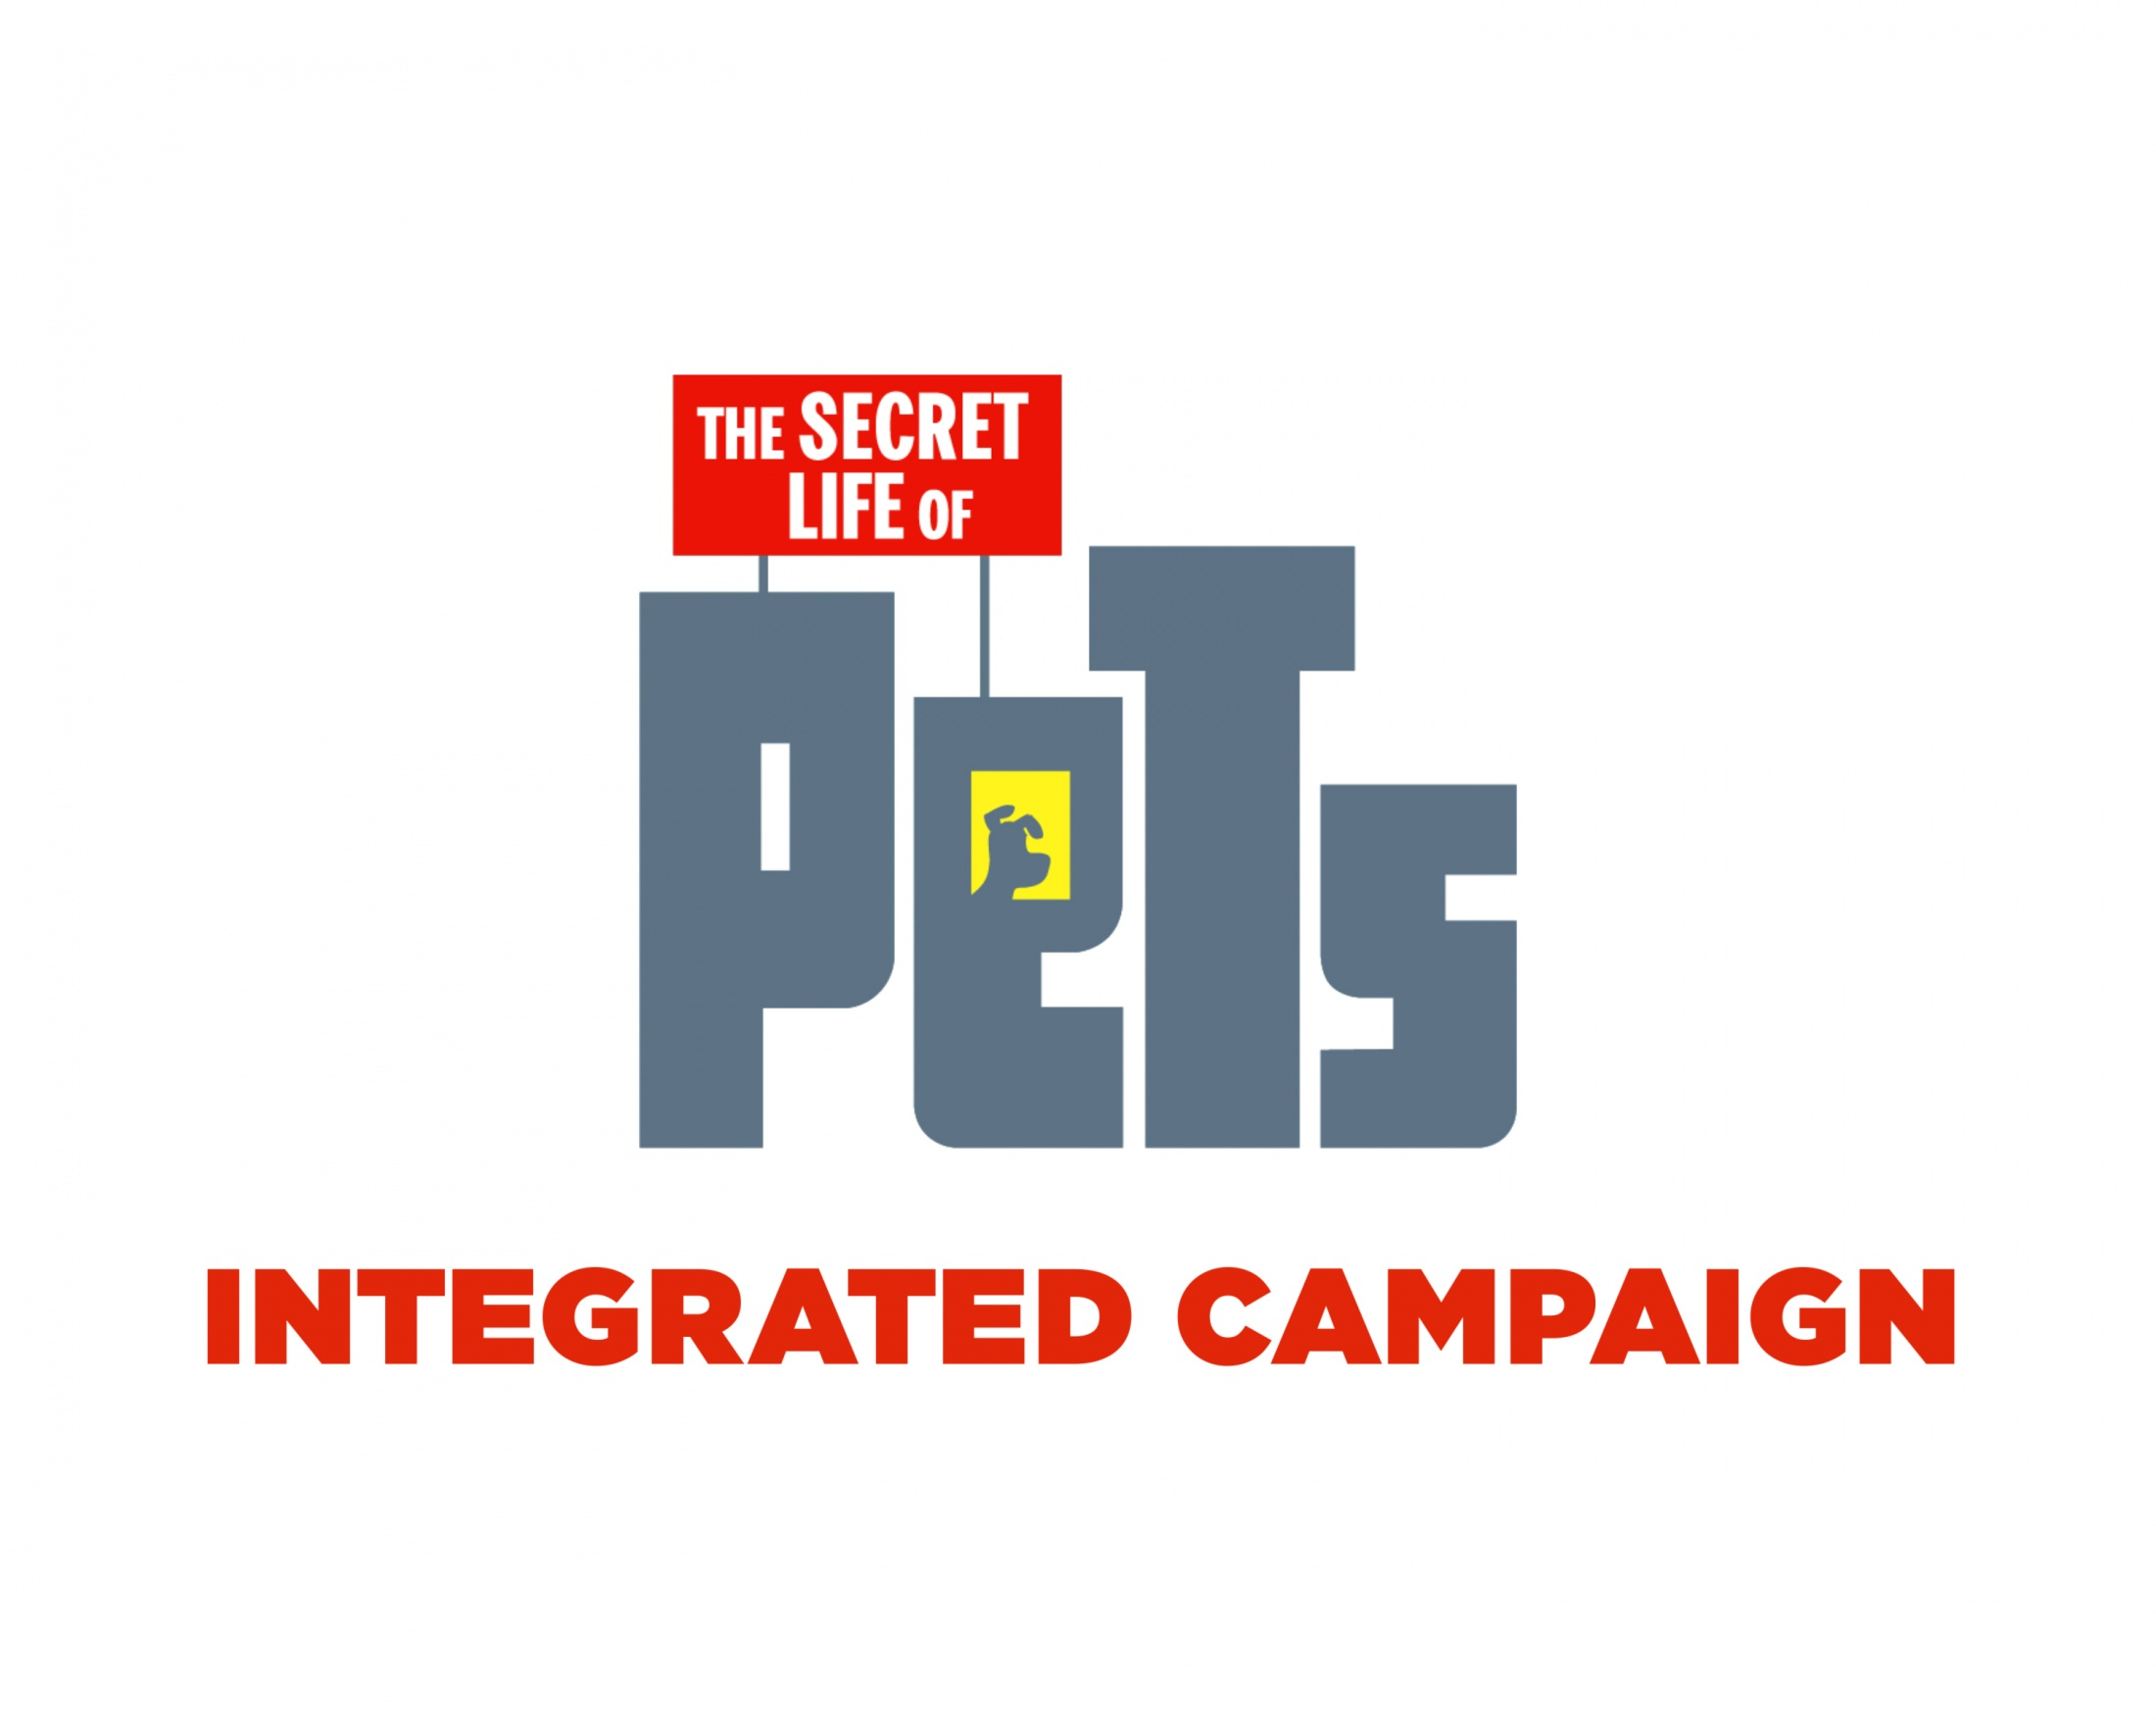 Thumbnail for The Secret Life of Pets: Integrated Campaign